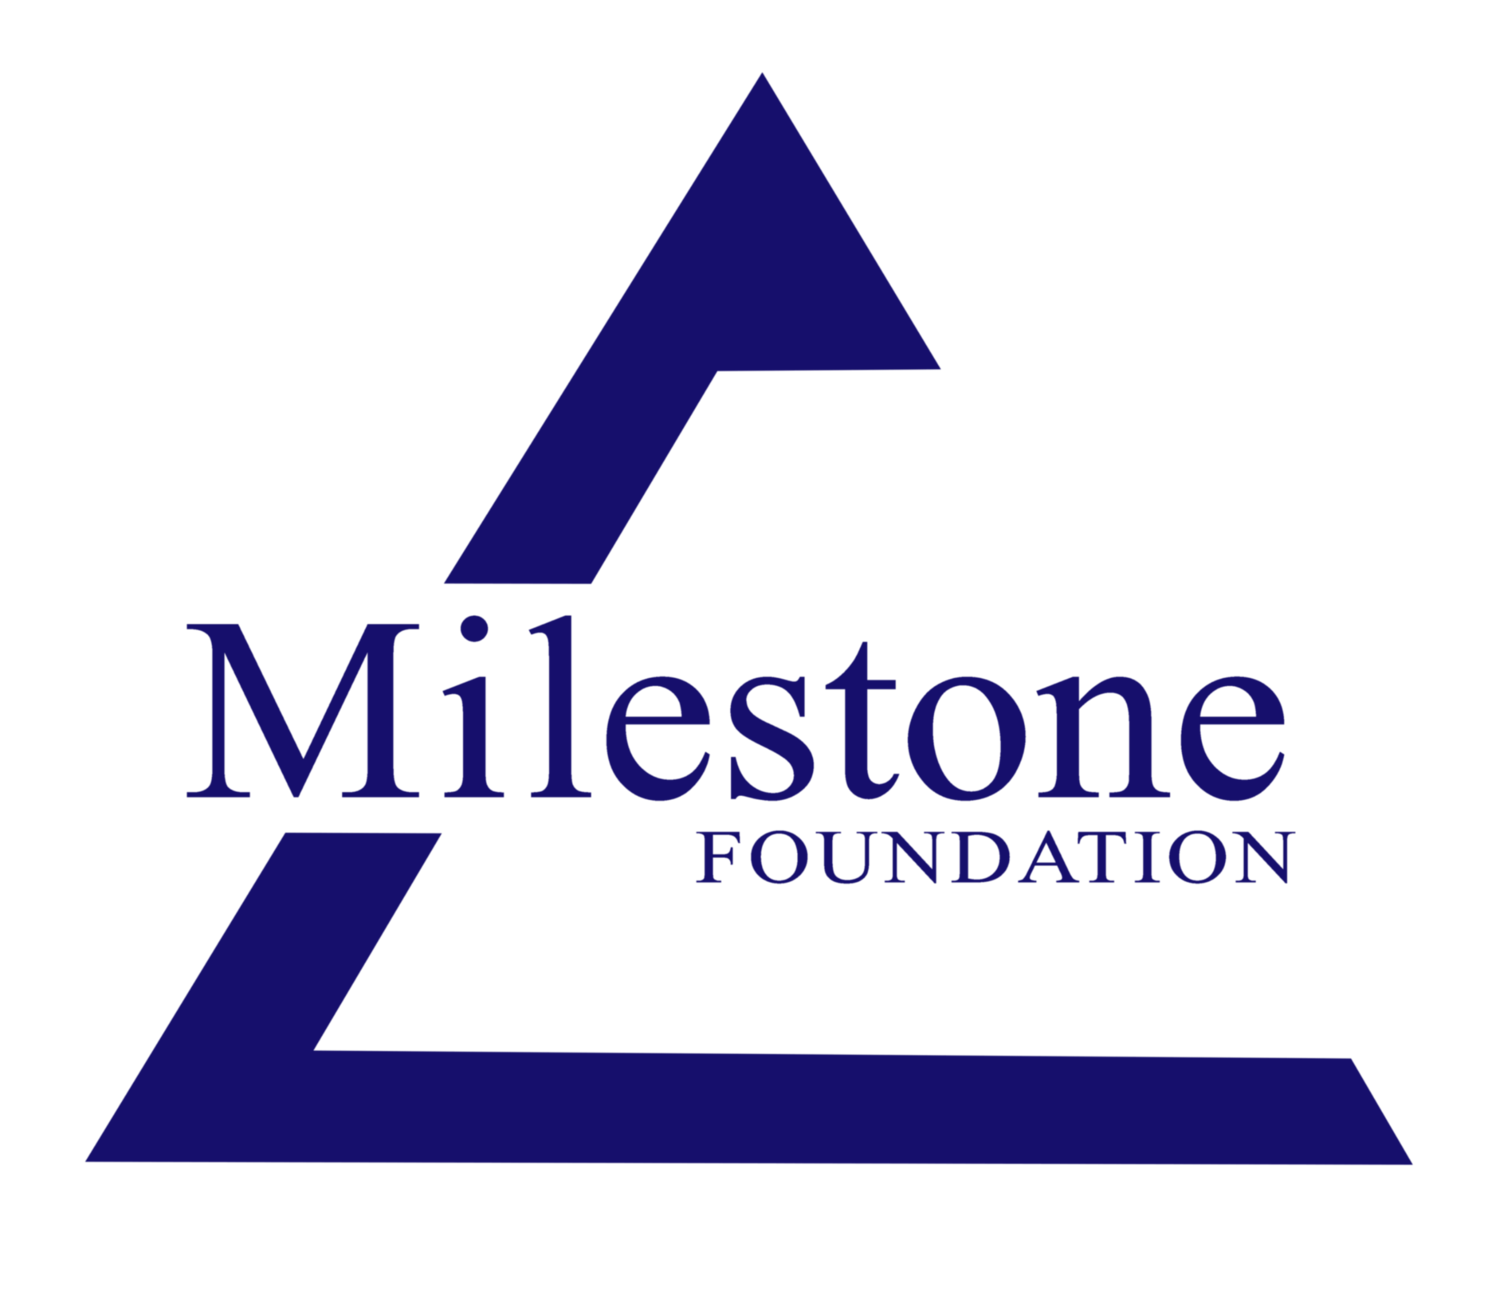 Milestone Foundation